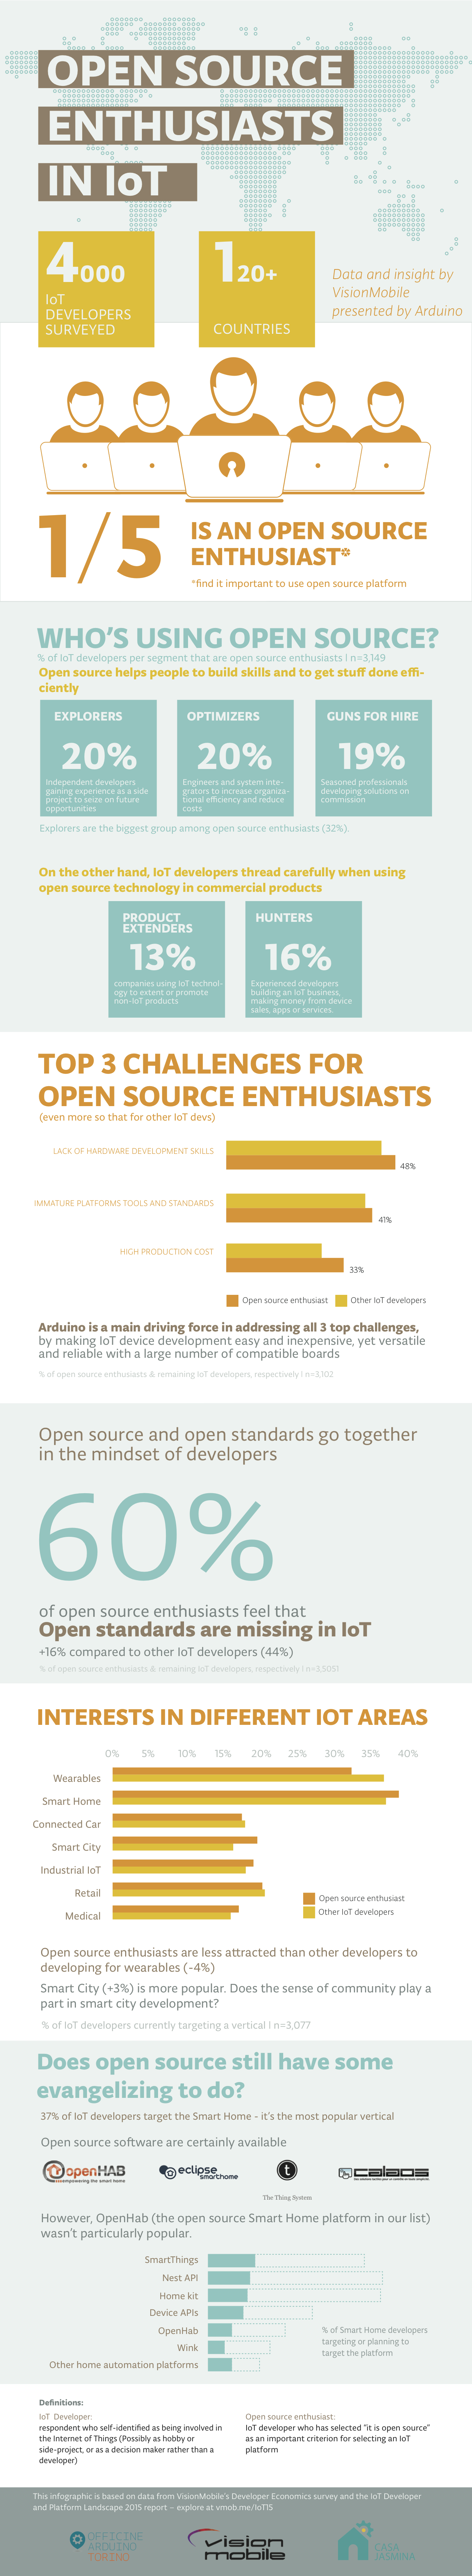 open-source-enthusiasts-iot